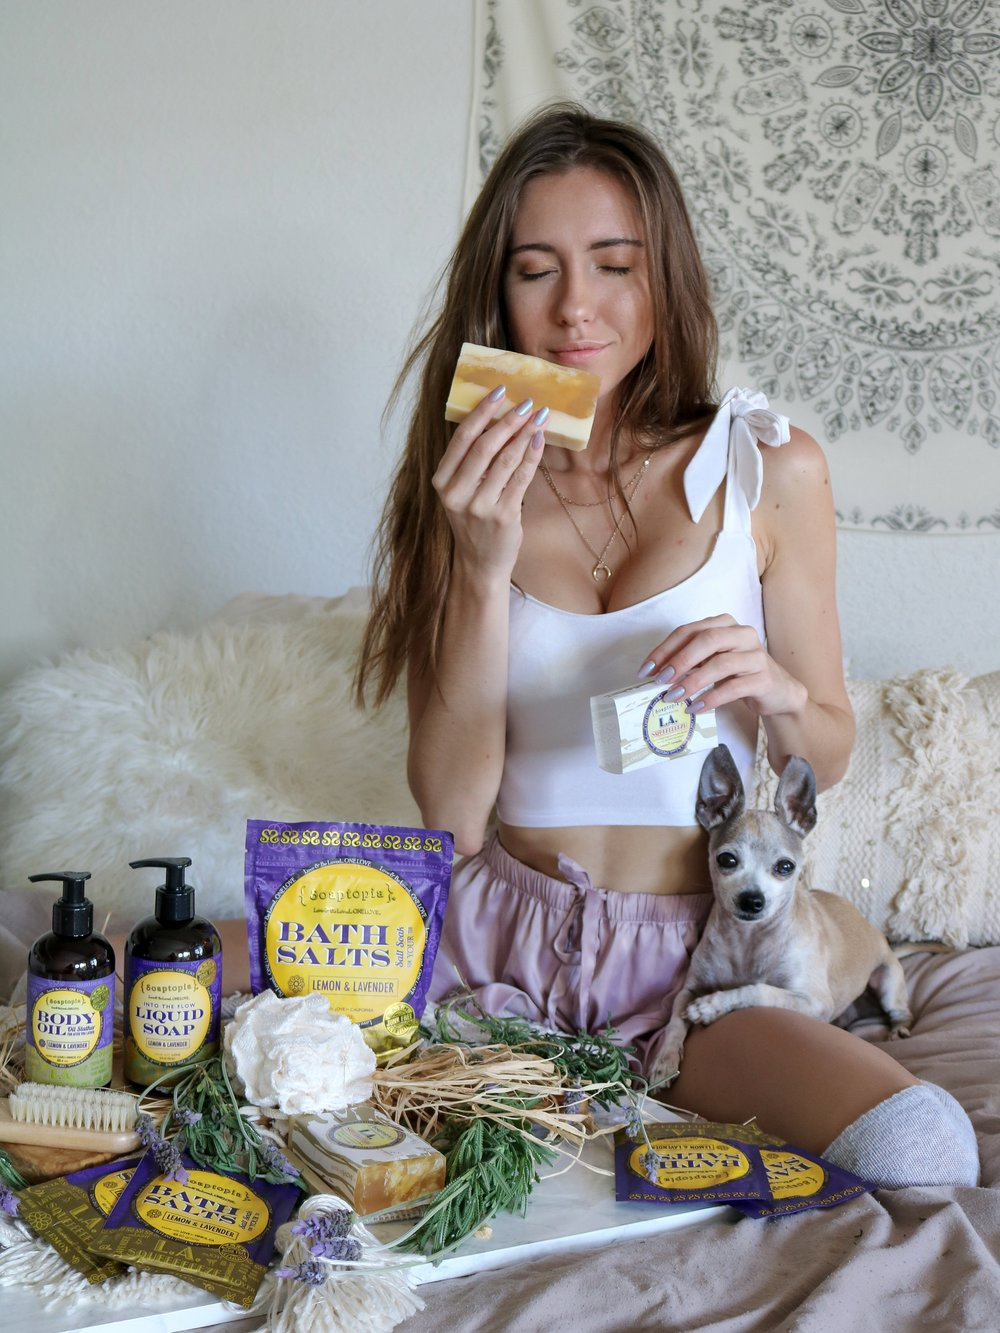 The+Hungarian+Brunette+-+THE+PERFECT+BATH+TIME+RITUAL+%28%26+PRODUCT+LINE%29+TO+UNWIND+AT+NIGHT+-+Soaptopia+Lemon+lavender+collection